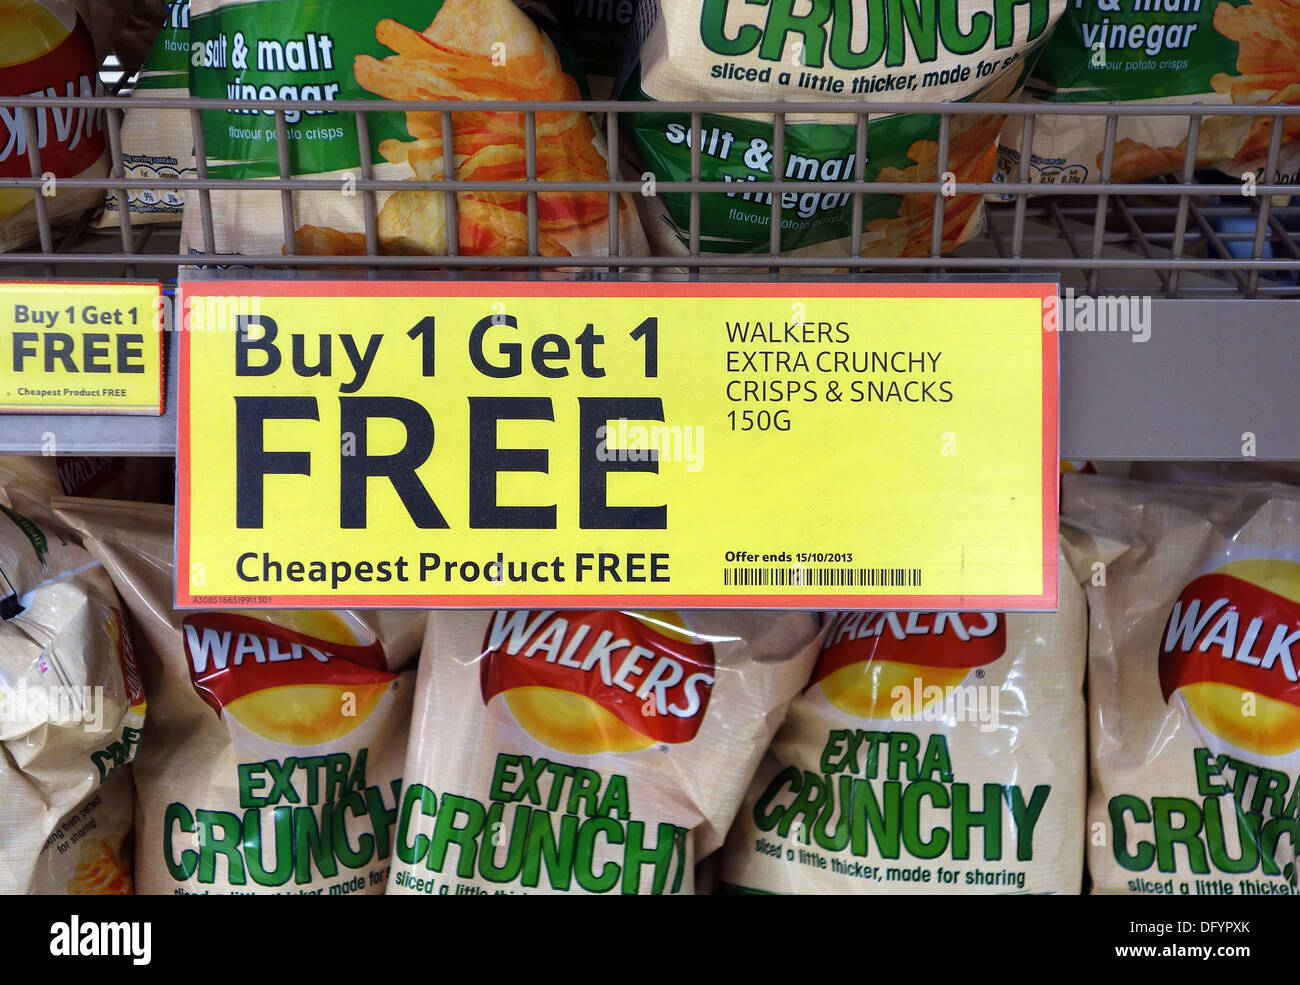 a buy 1 get 1 free sign in a tesco supermarket - Stock Image